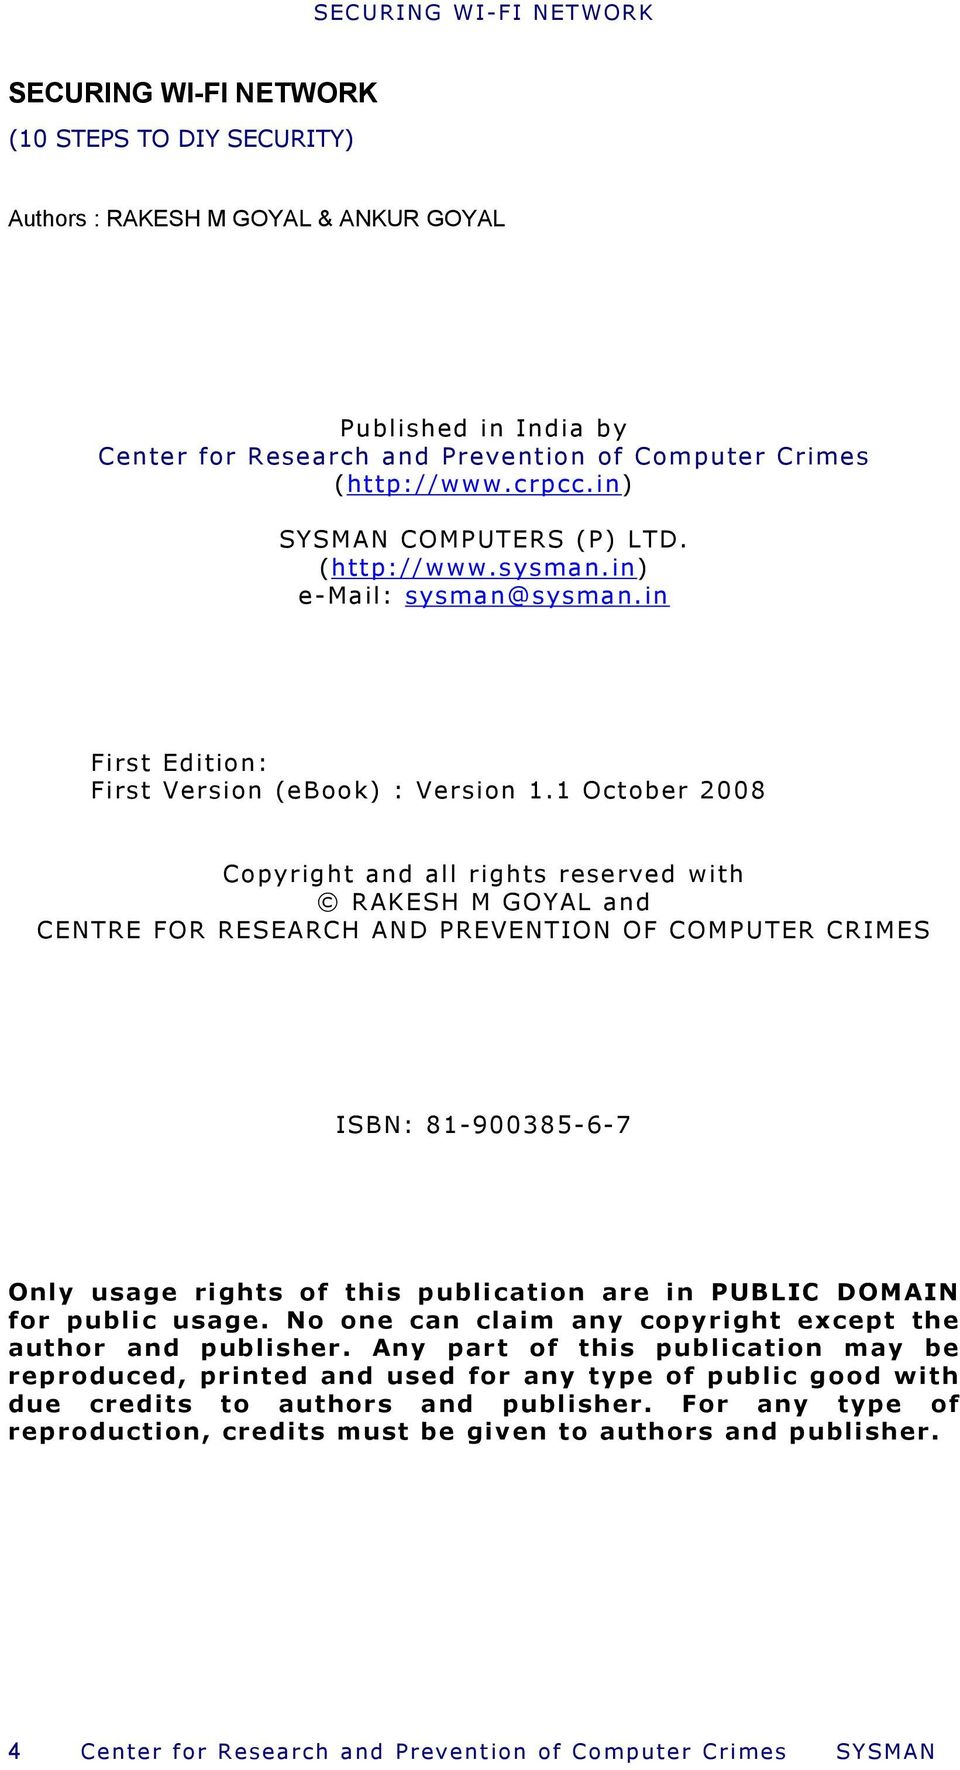 1 October 2008 Copyright and all rights reserved with RAKESH M GOYAL and CENTRE FOR RESEARCH AND PREVENTION OF COMPUTER CRIMES ISBN: 81-900385-6-7 Only usage rights of this publication are in PUBLIC